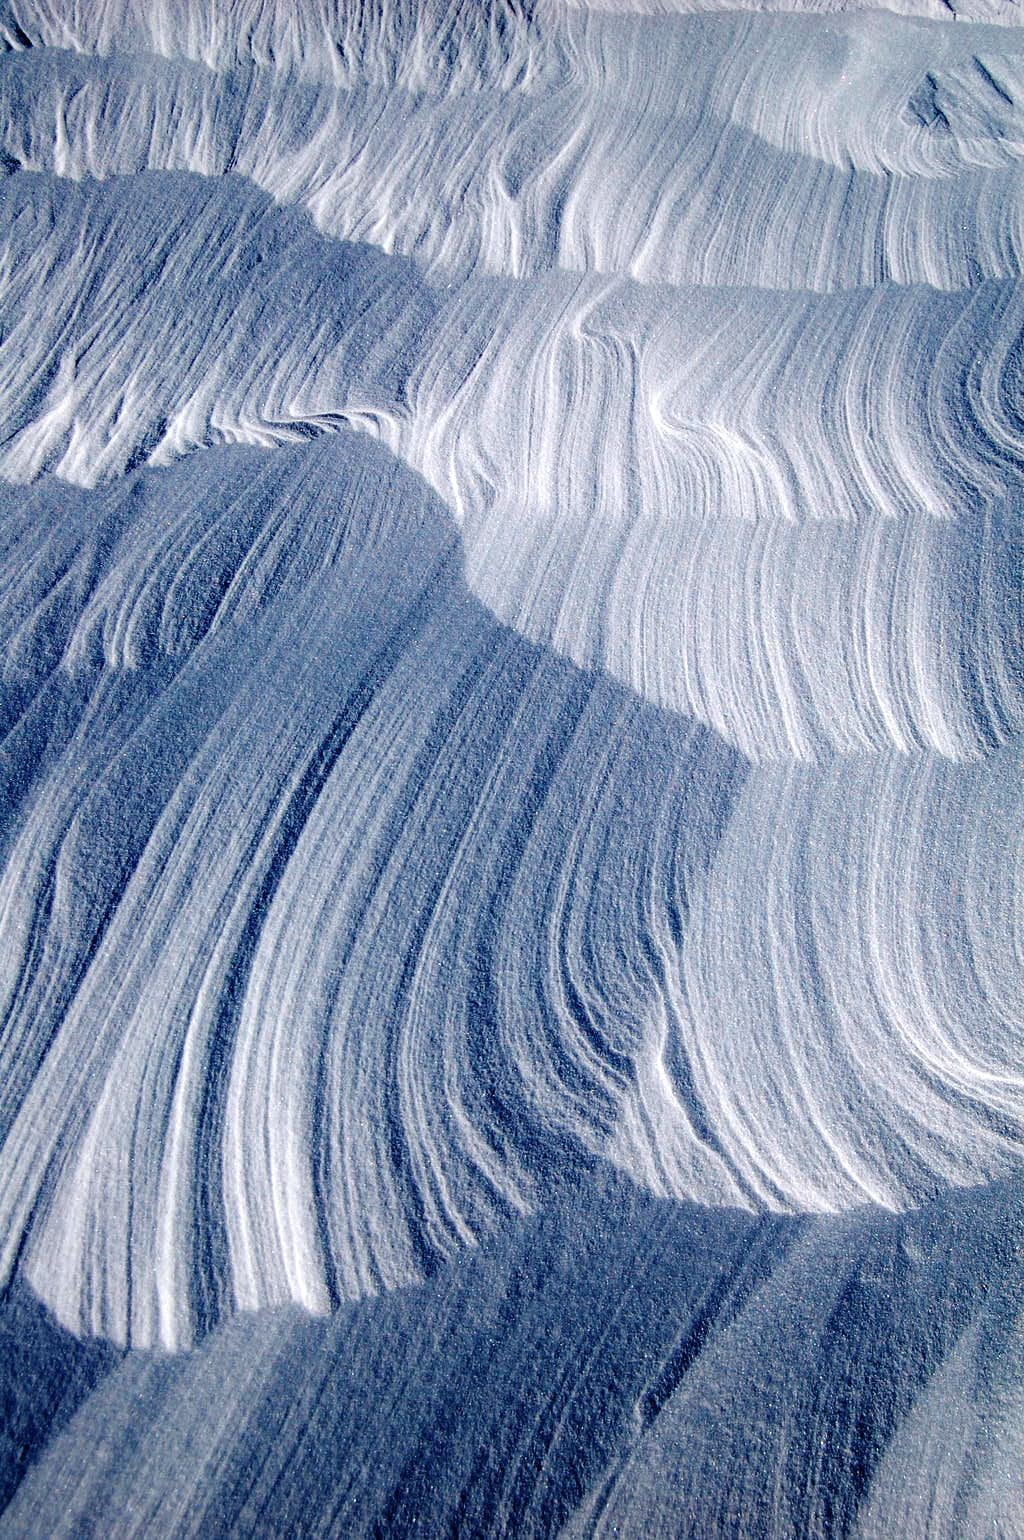 Wind Scoured Snow on the Bolam Glacier